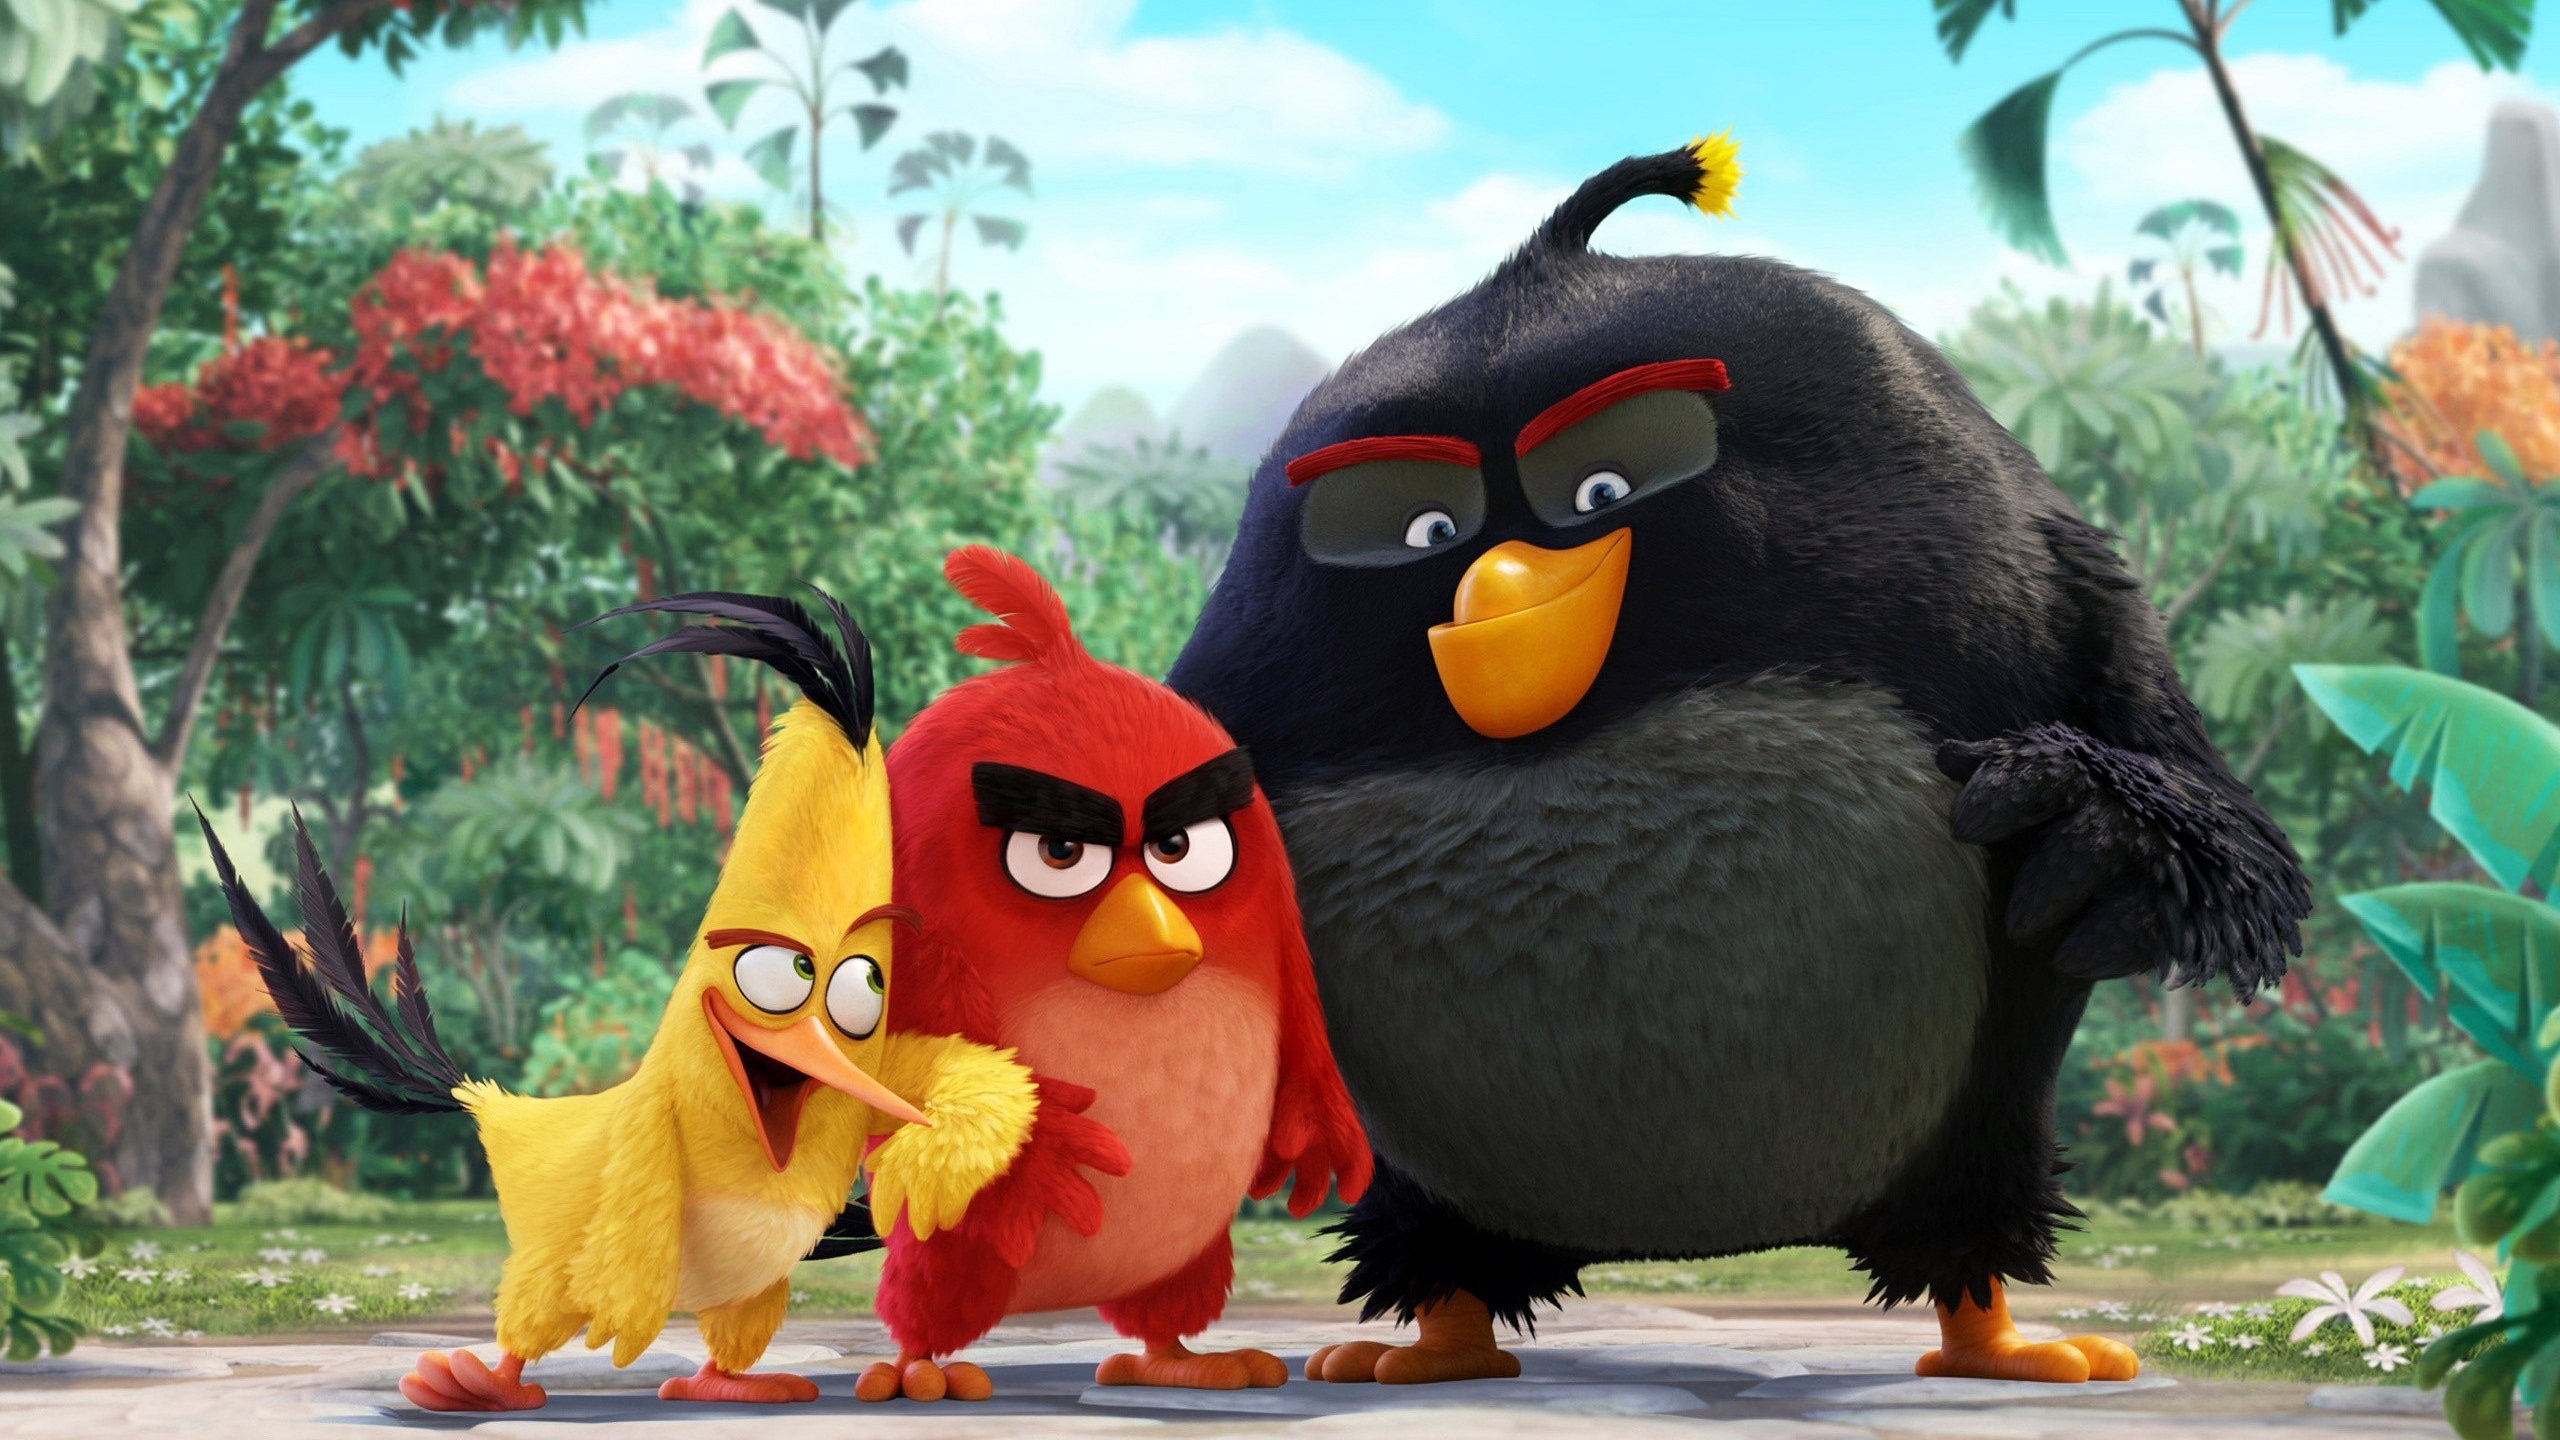 Desktop the angry birds movie ultra hd bluray review high on image.